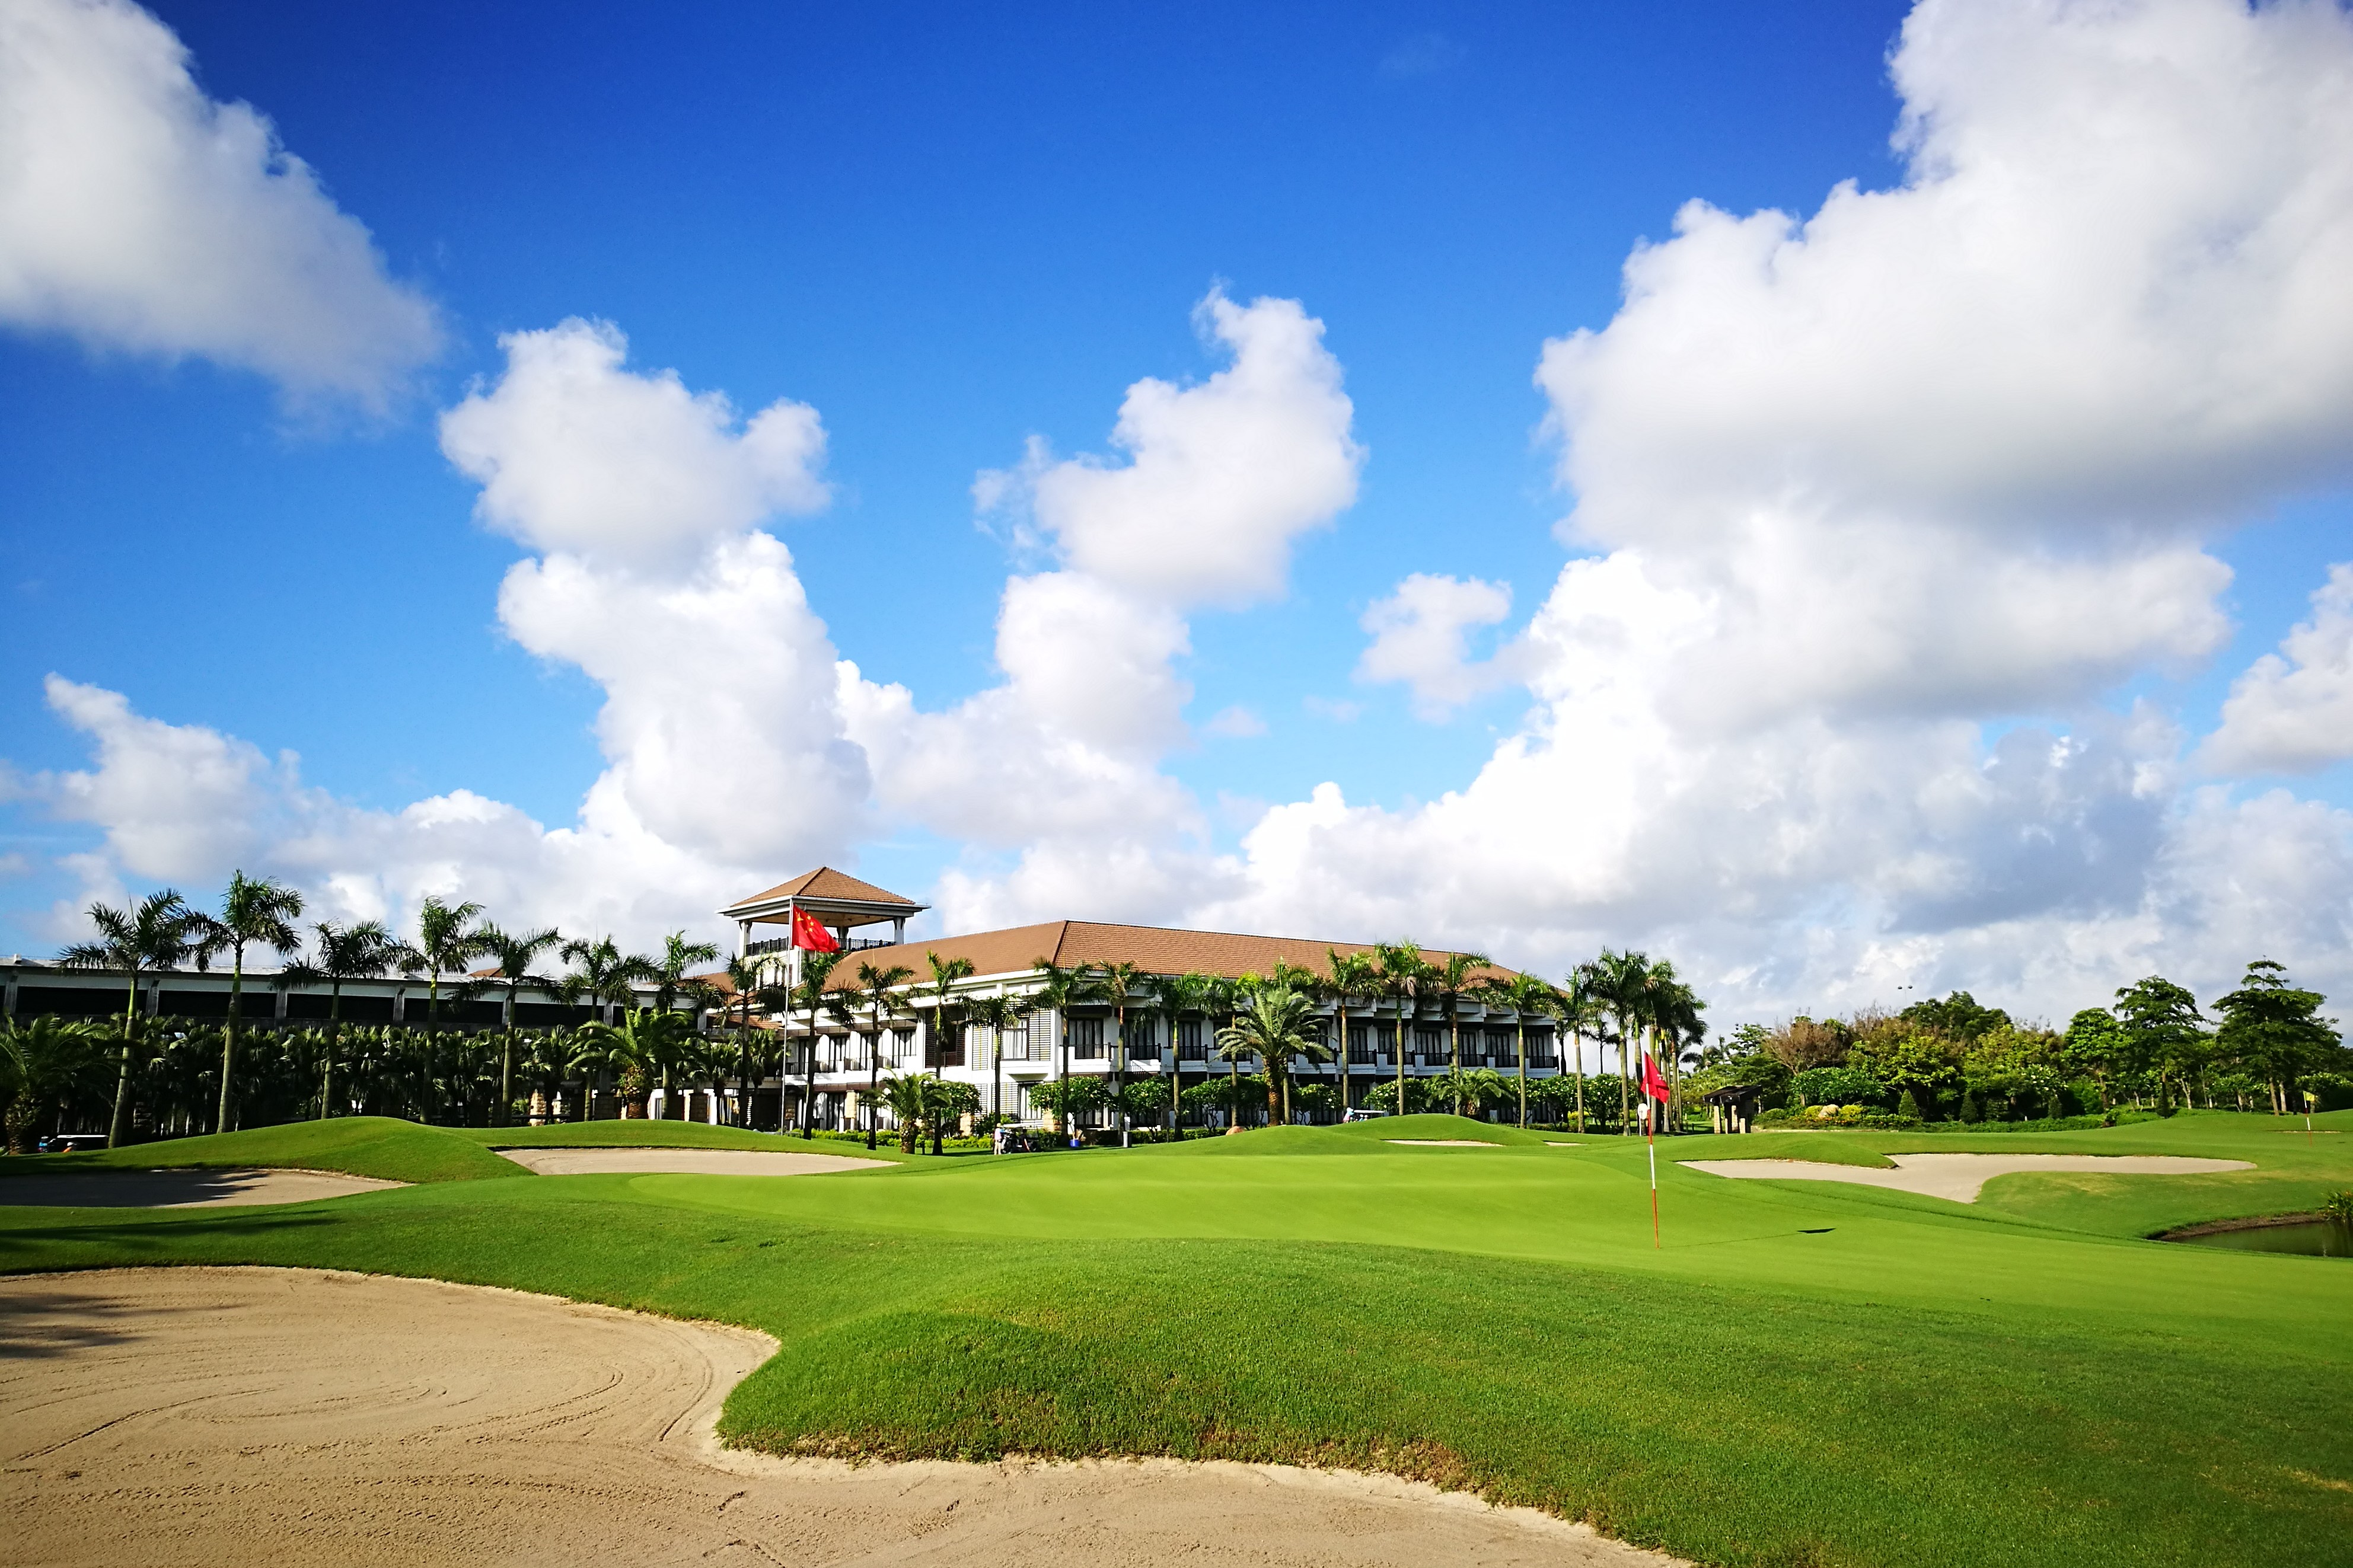 Zhuhai Golden Gulf Golf Club 18 Green and Clubhouse